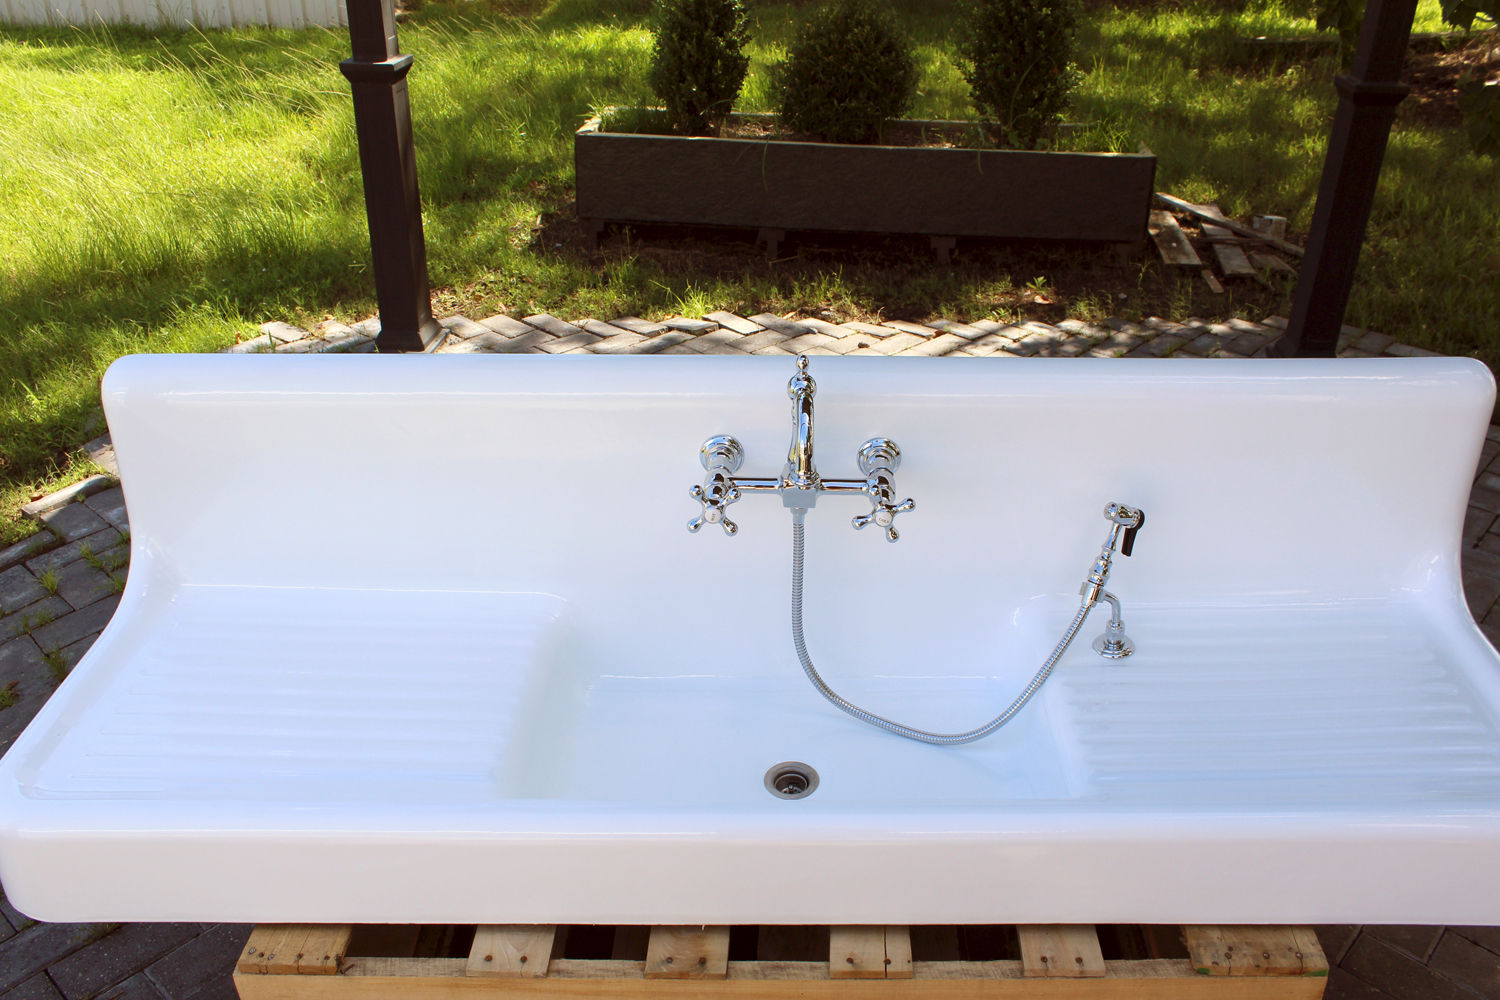 The Search For A Vintage Farmhouse Sink Domestic Imperfection pertaining to dimensions 1500 X 1000